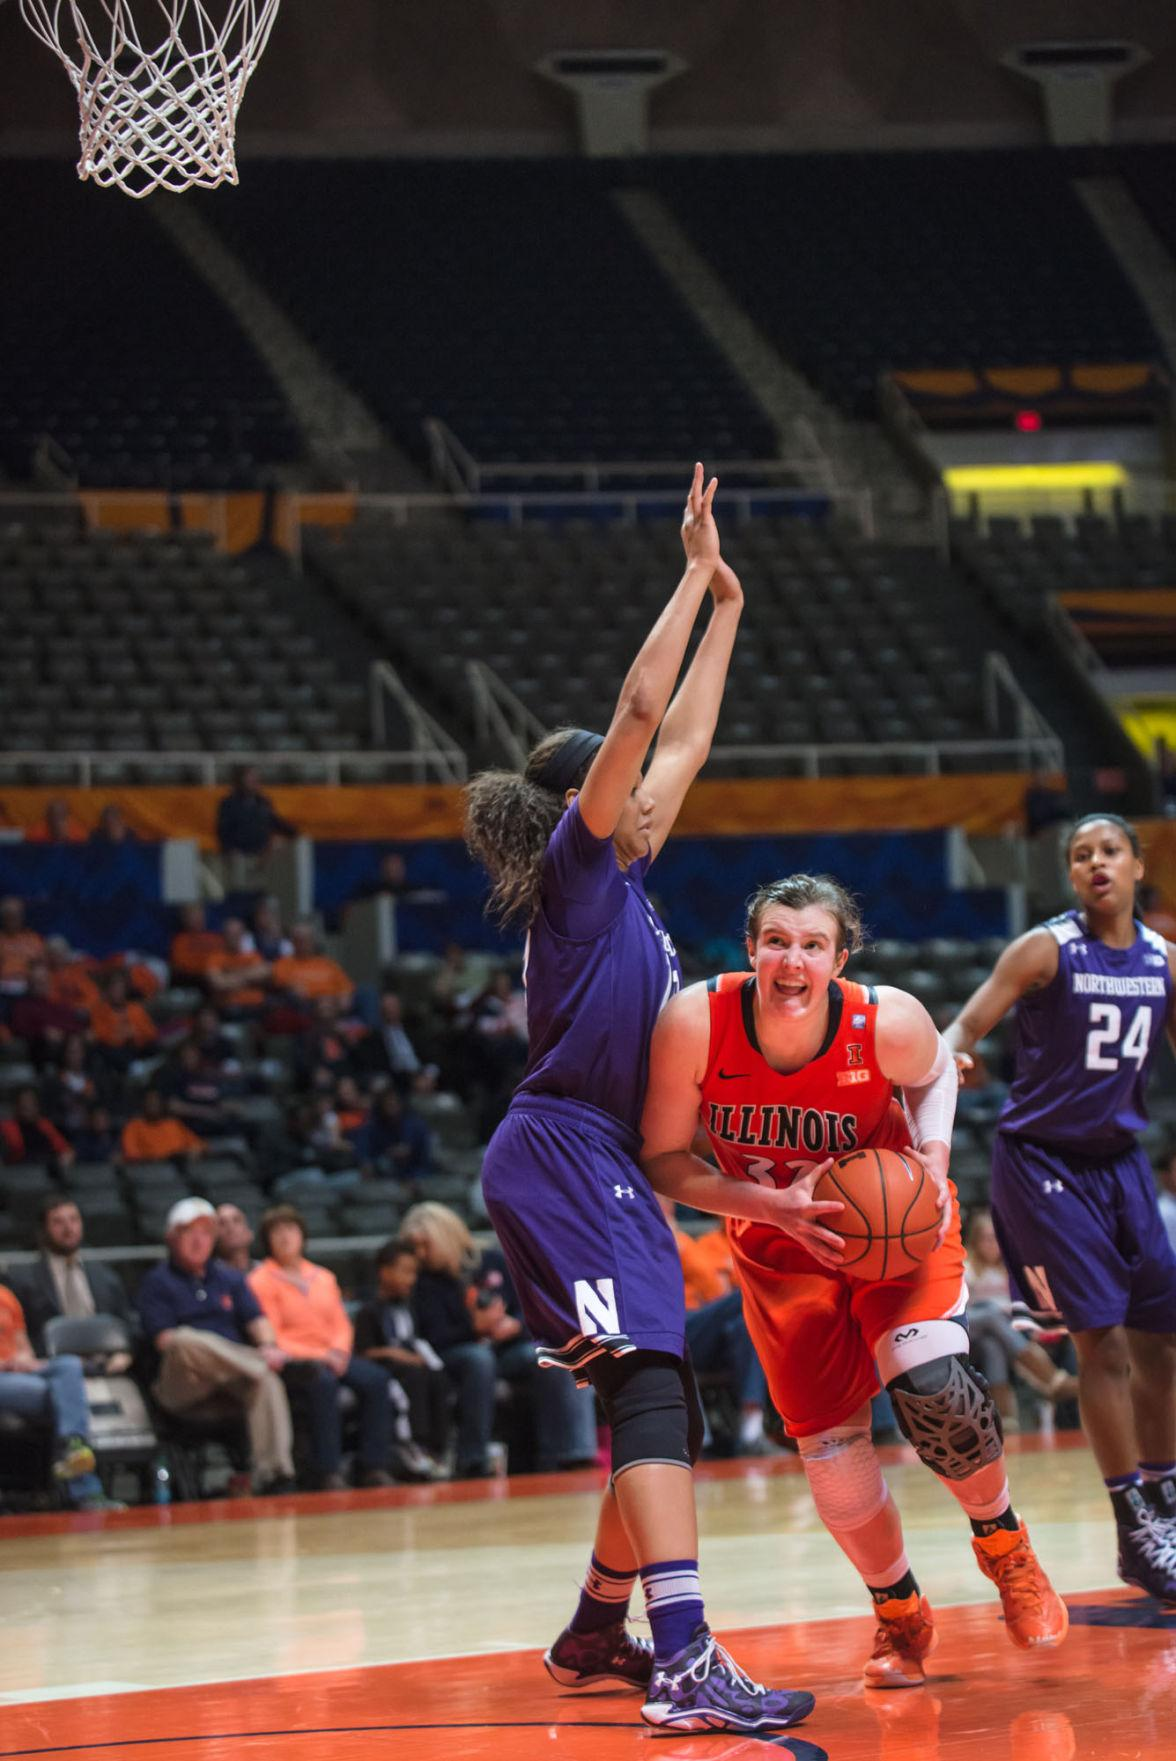 Illinois' Chatrice White (32) tries to edge past her opponent during the game versus Northwestern at the State Farm Center on Thursday, January 22, 2015.